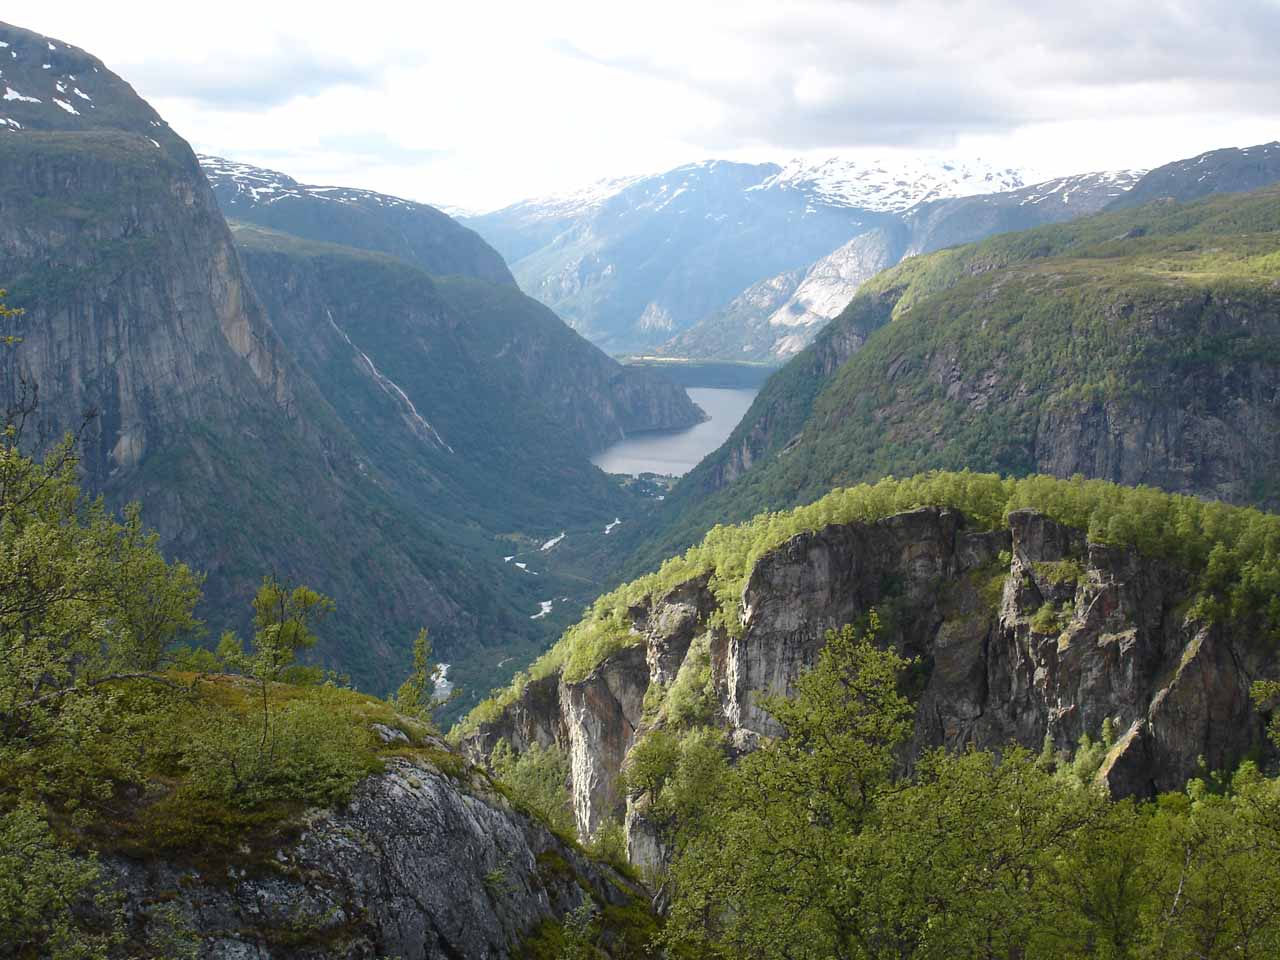 On the way to Vøringsfossen, we passed by the narrow and steep valley Hjølmodalen near the town of Øvre Eidfjord (Upper Eidfjord)